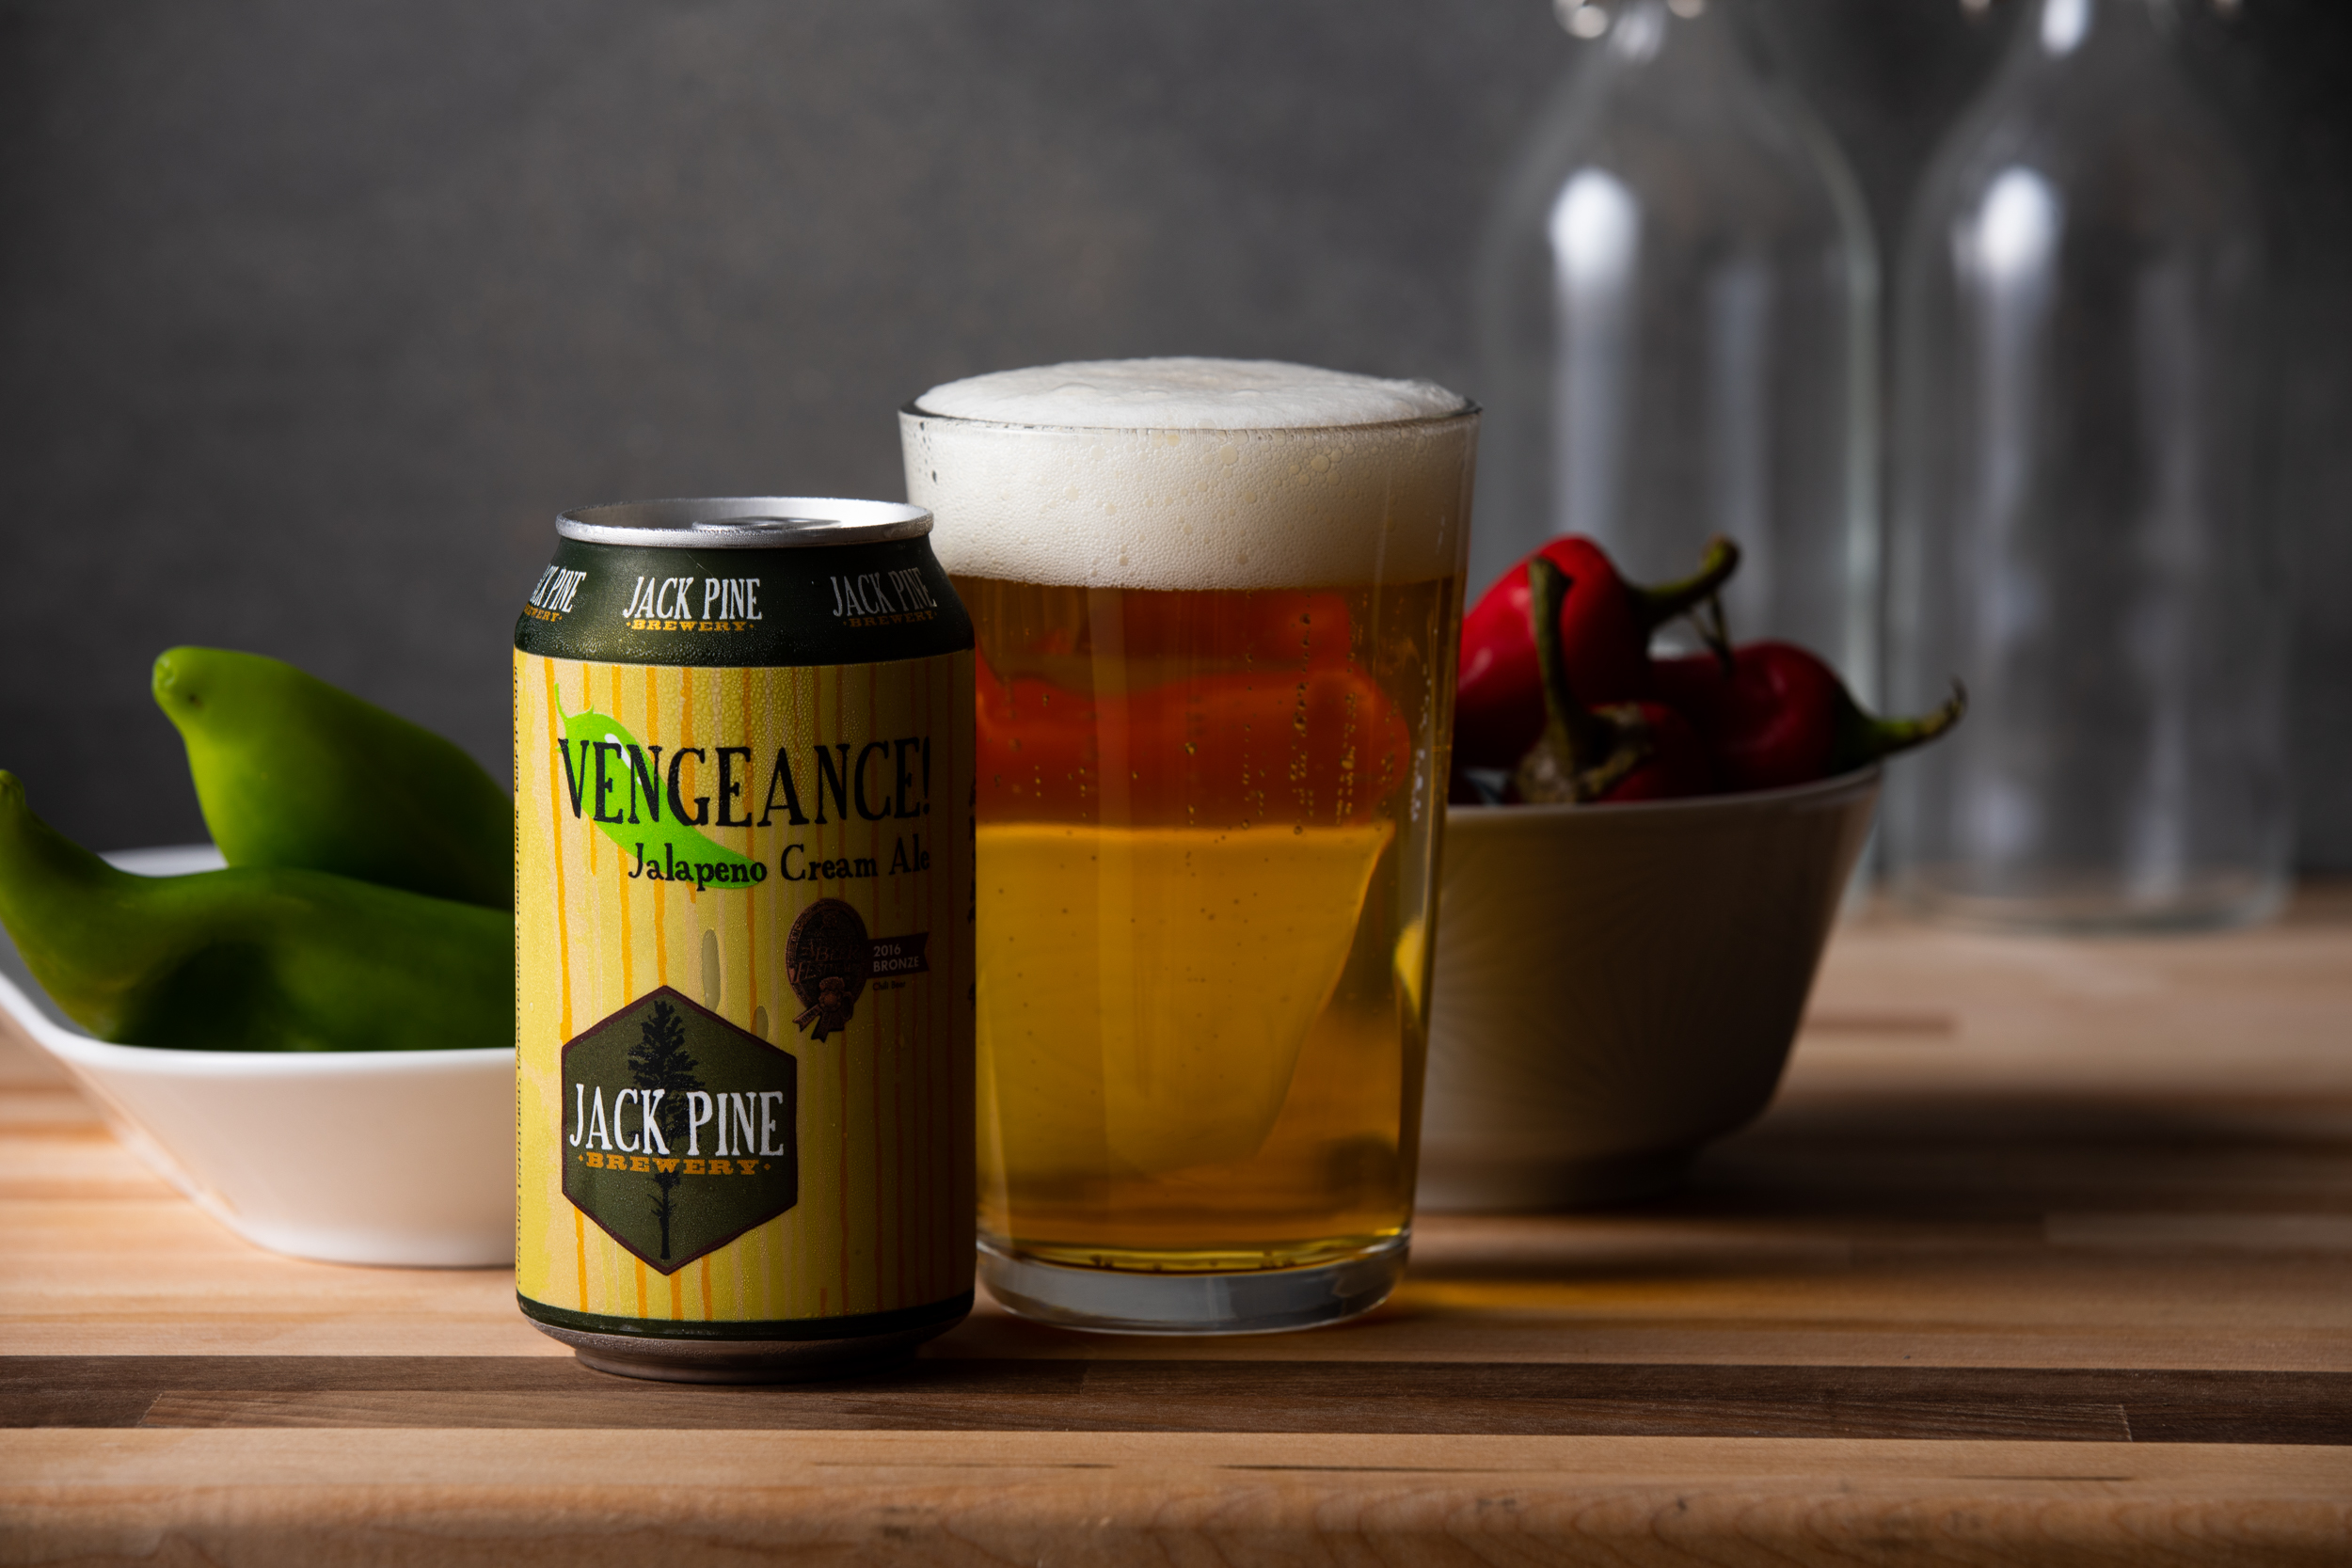 Jack Pine Vengeance Cream Ale // Photo by Tj Turner